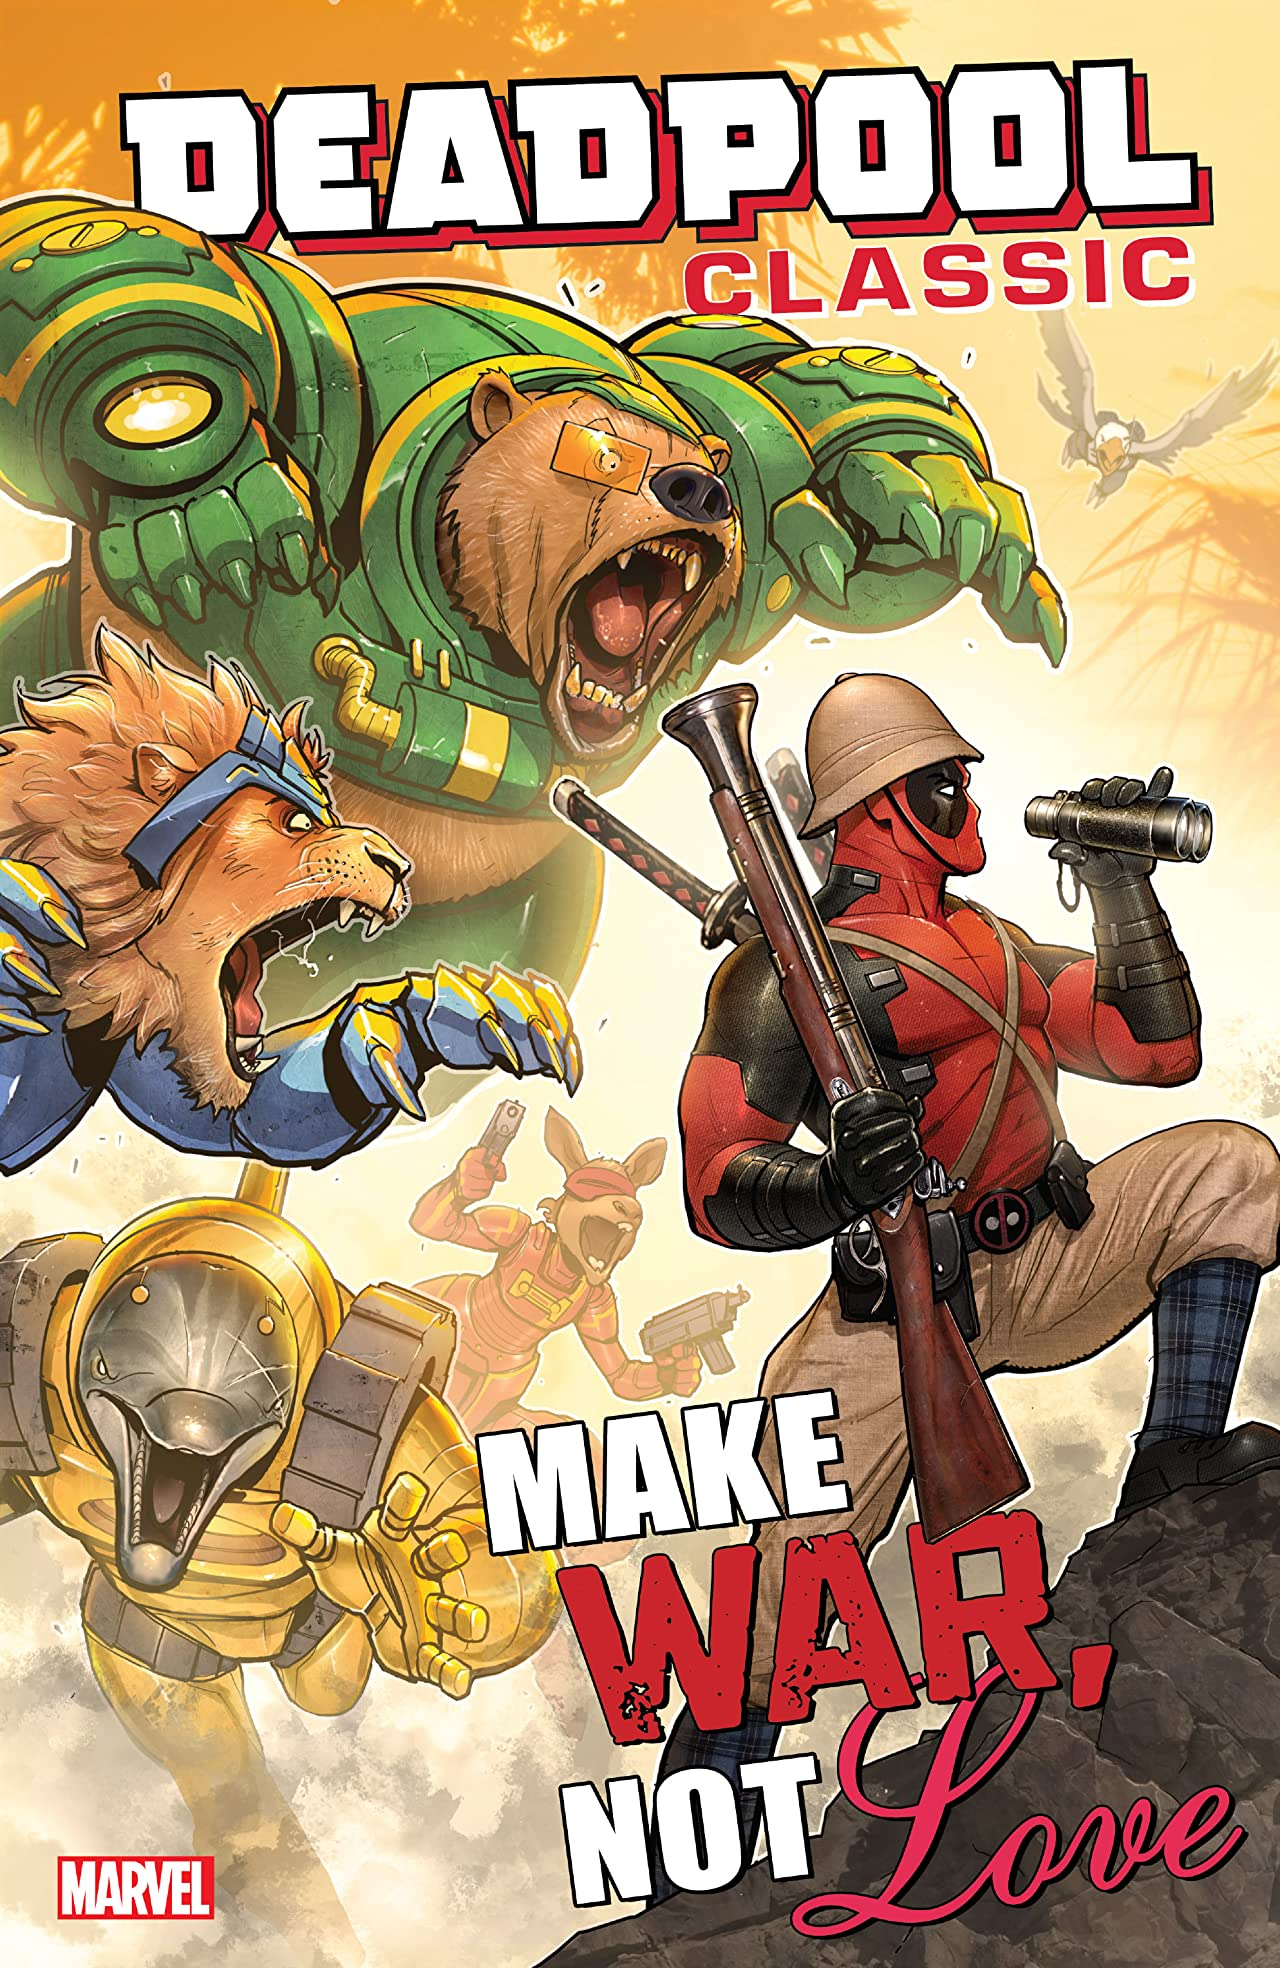 Deadpool Classic Vol. 19: Make War, Not Love